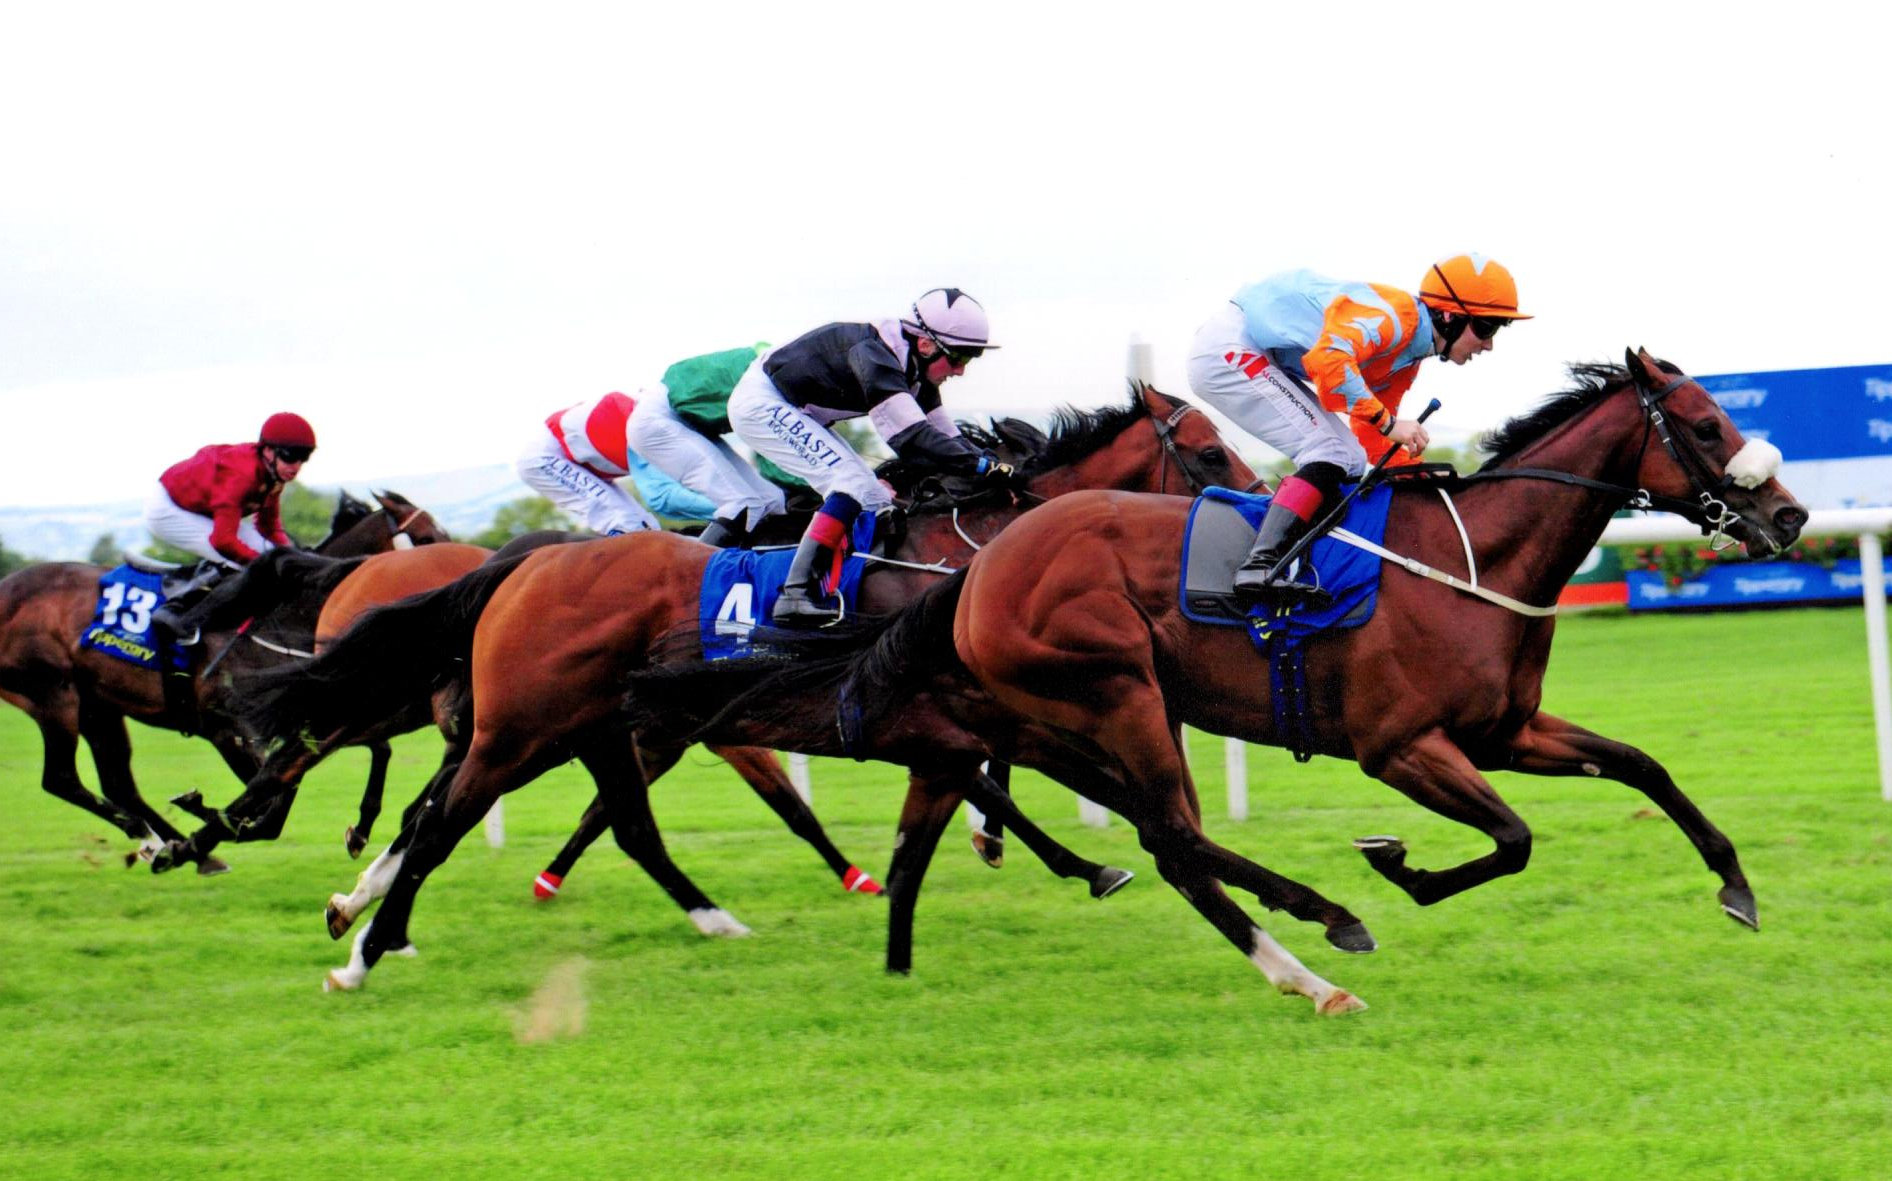 BLUE ULURU earns Listed blacktype in the Kilfrush Stud Abergwaun Stks - Tipperary, 30th August 2018.